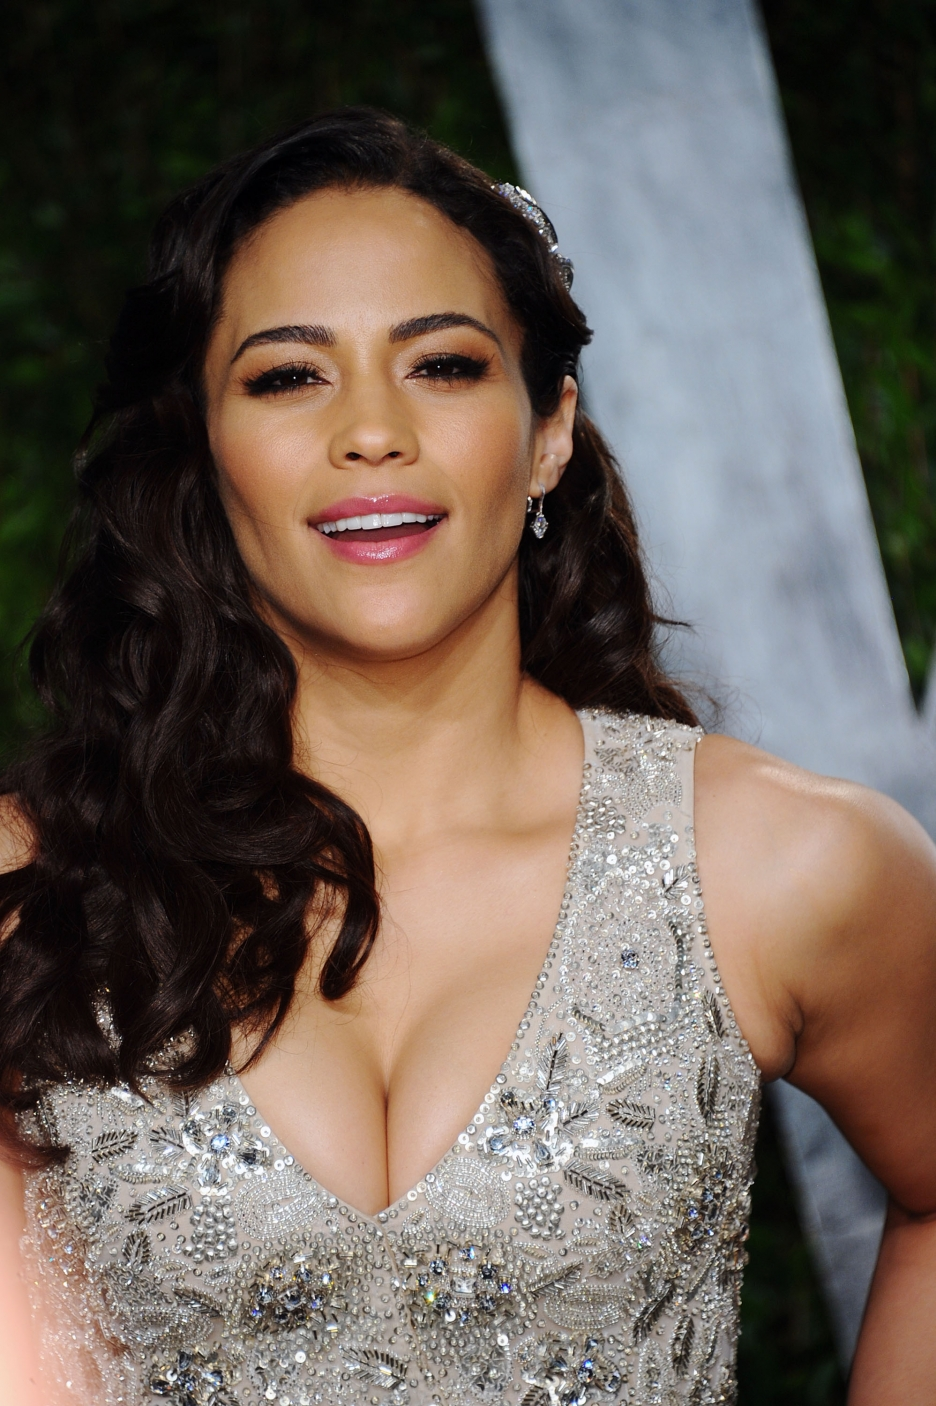 936full-paula-patton